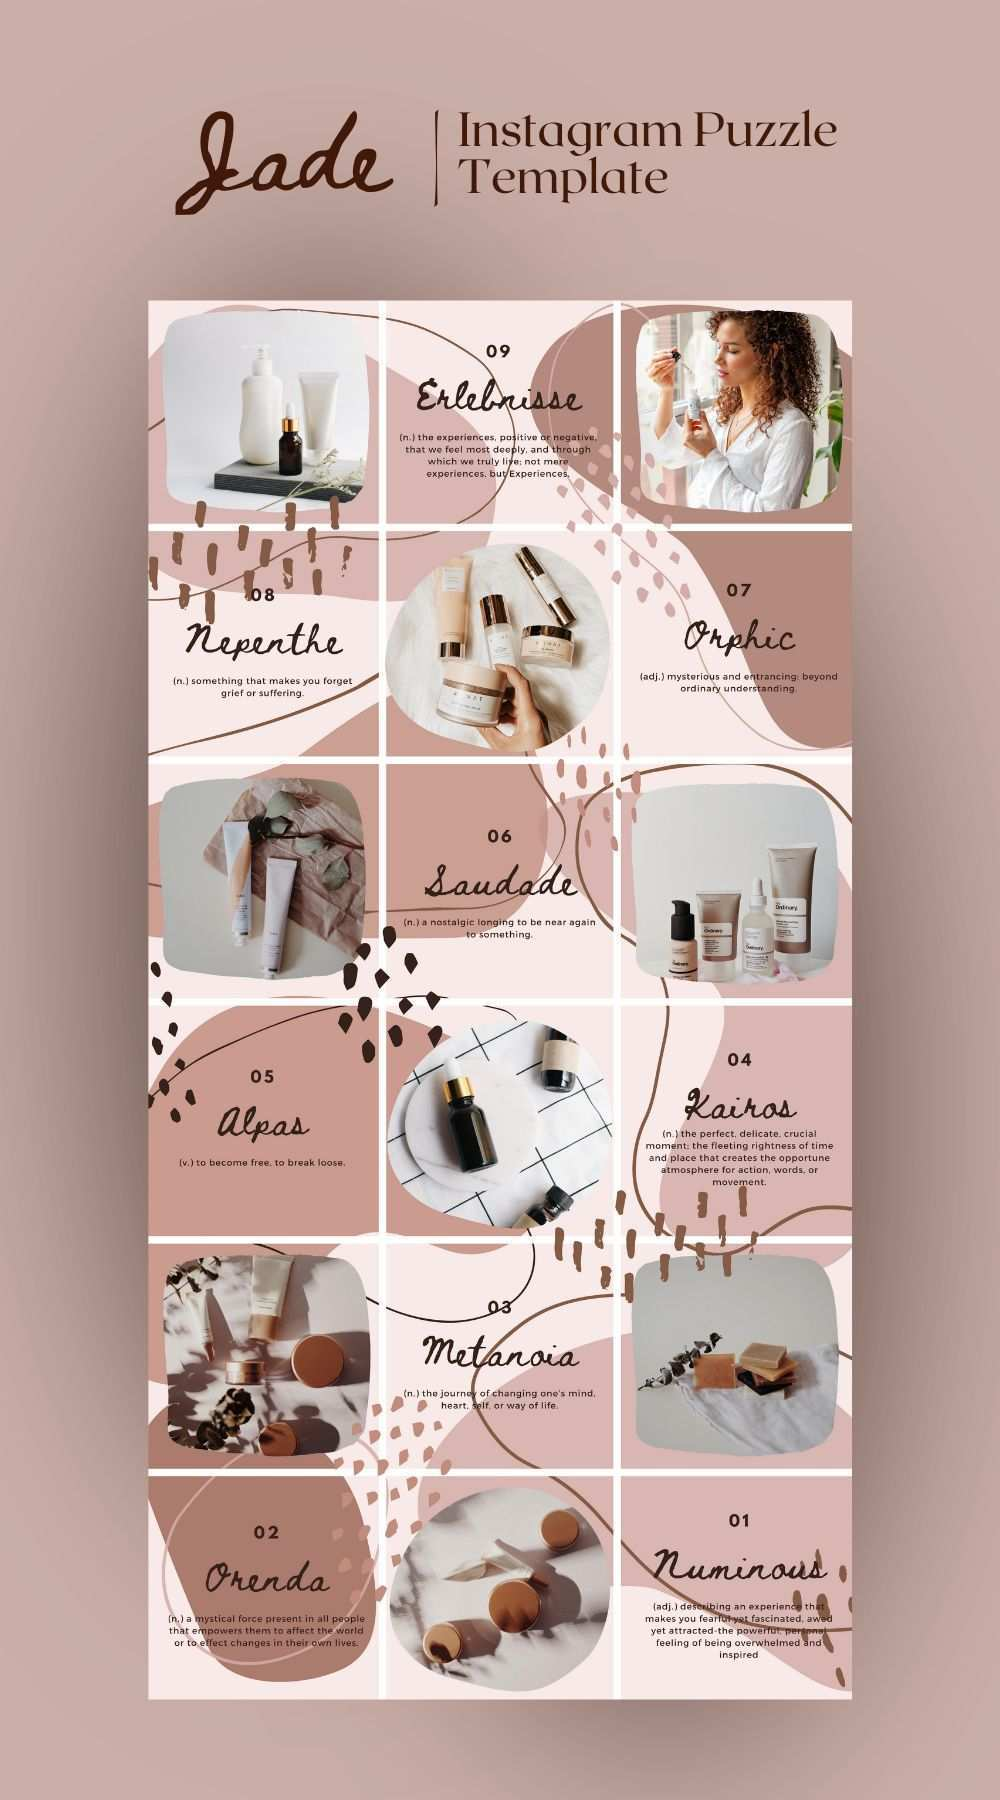 Instagram Puzzle Template For Brands And Bloggers Jade Canva Template For Instagram Instagram Grid Brand And Blog Template Instagram Feed Planner Instagram Template Design Instagram Feed Layout